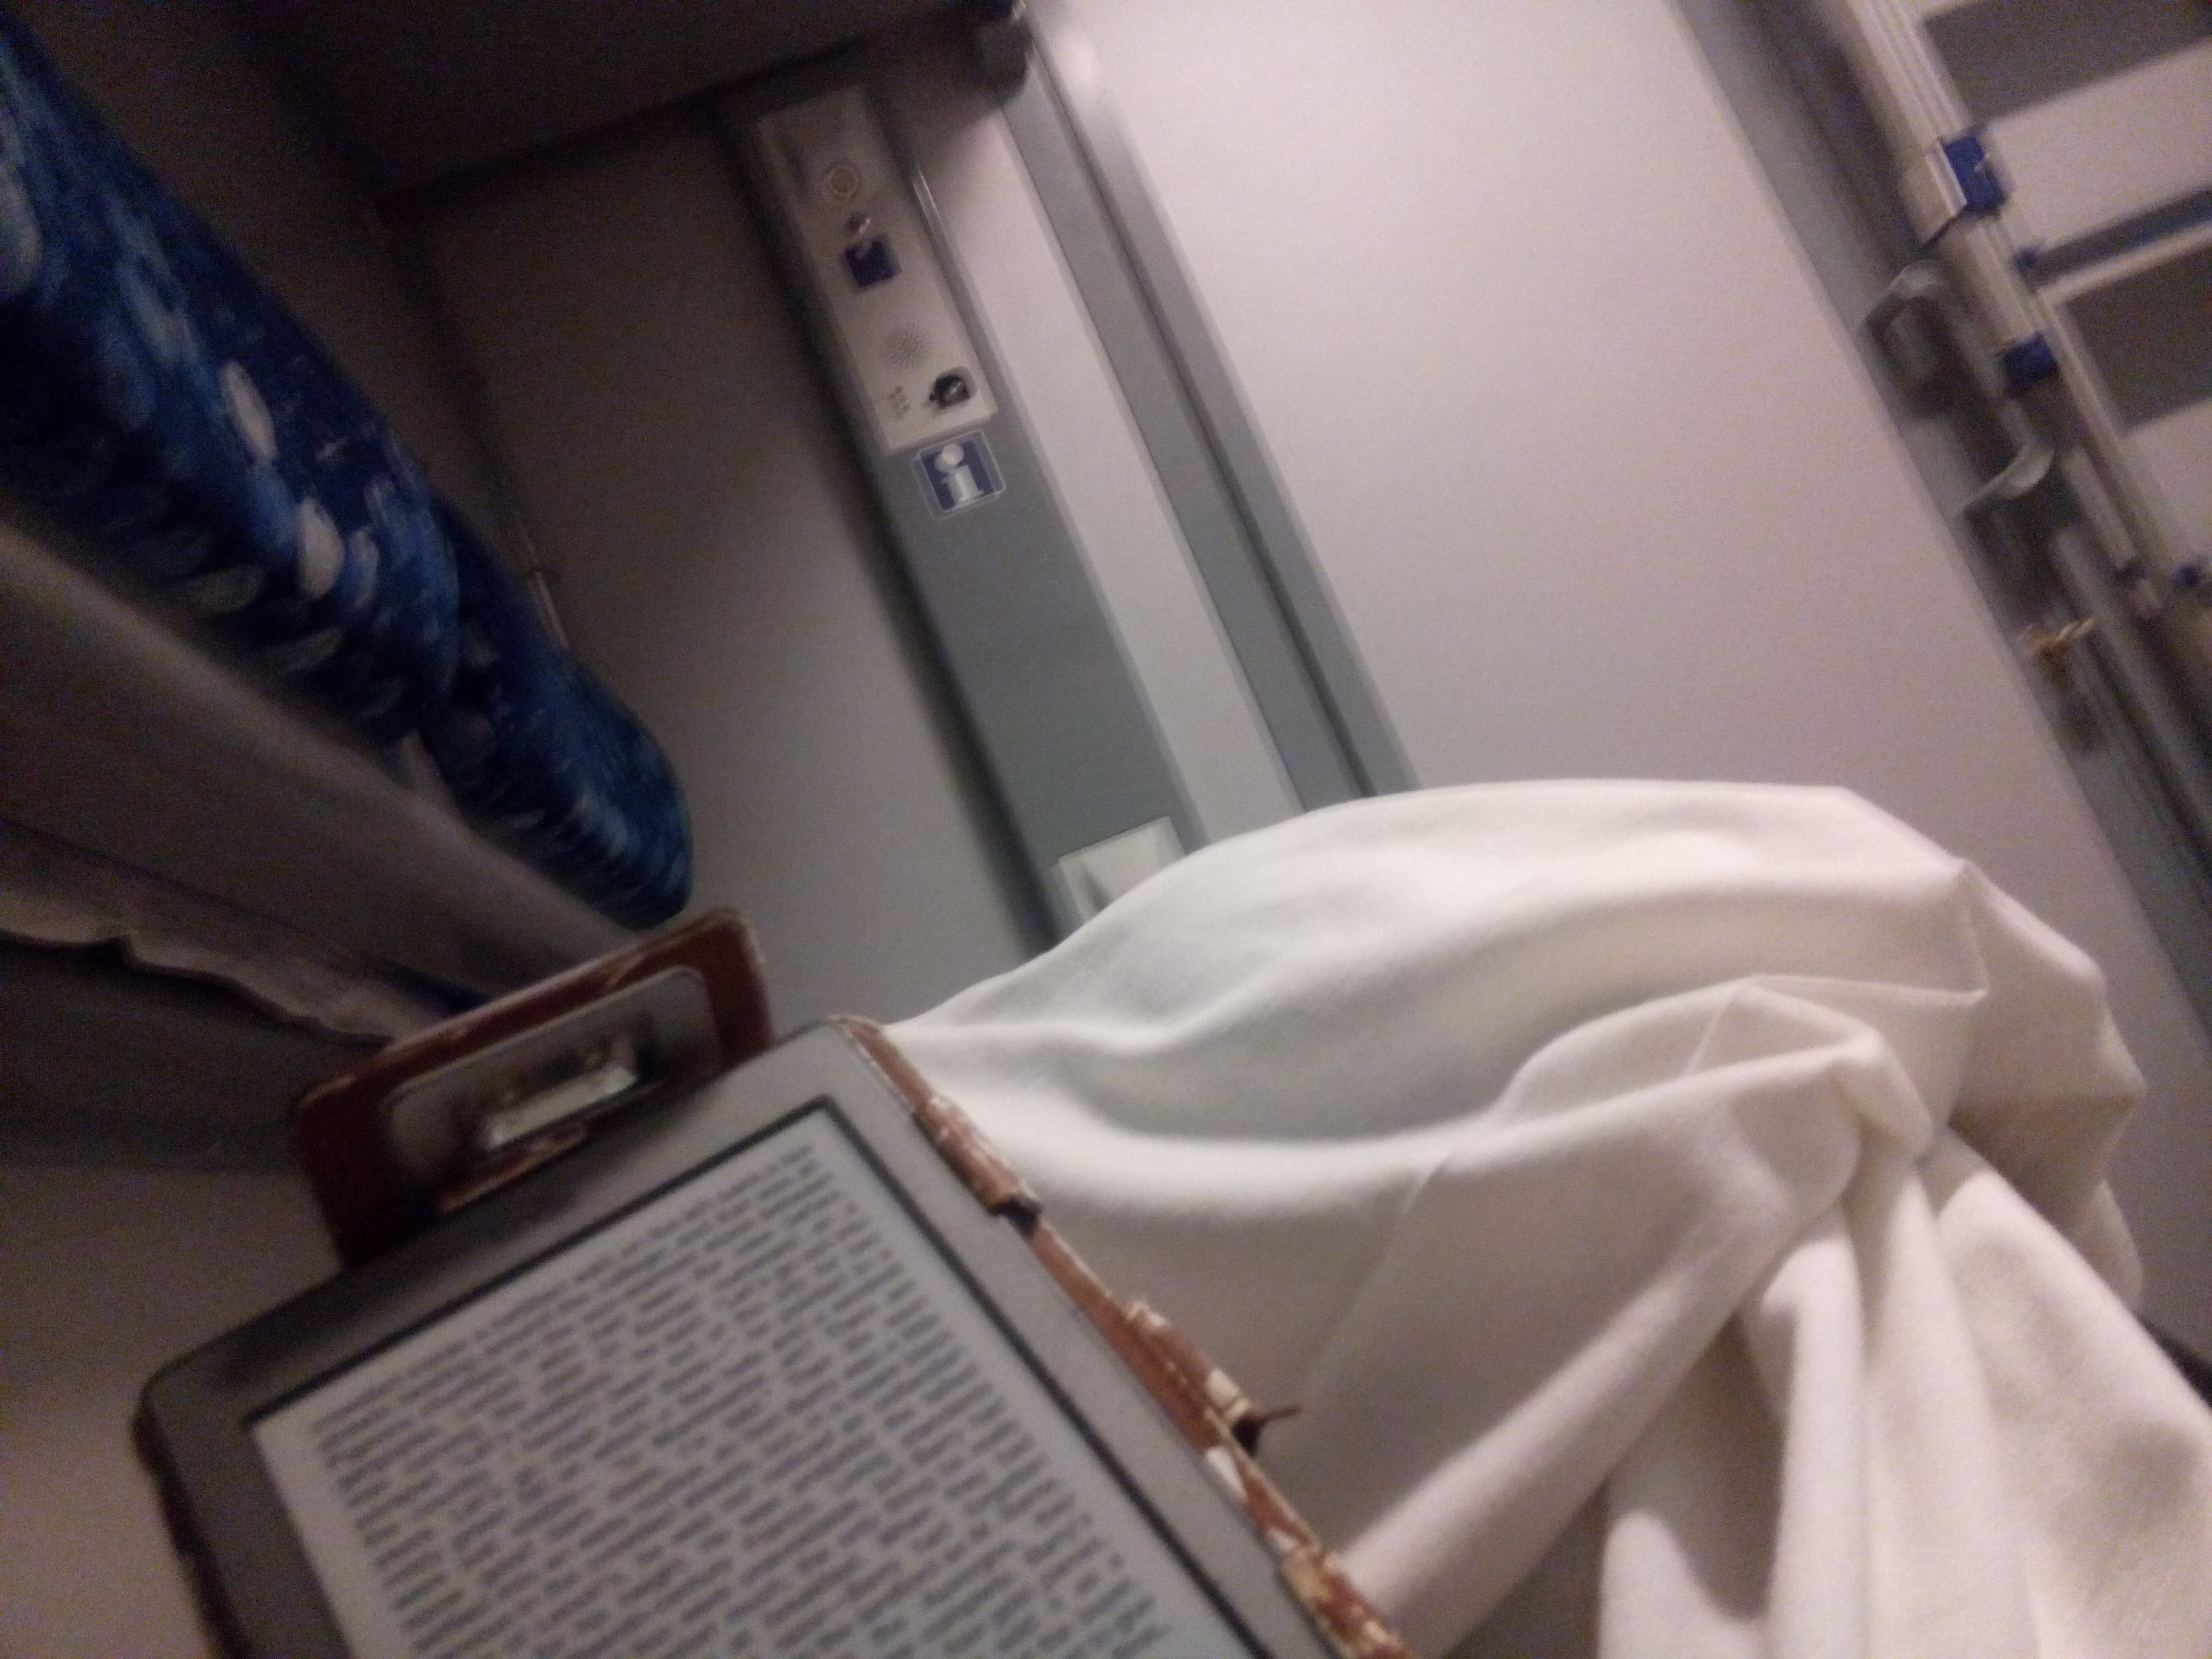 A kindle held from the perspective of someone lying in bed reading